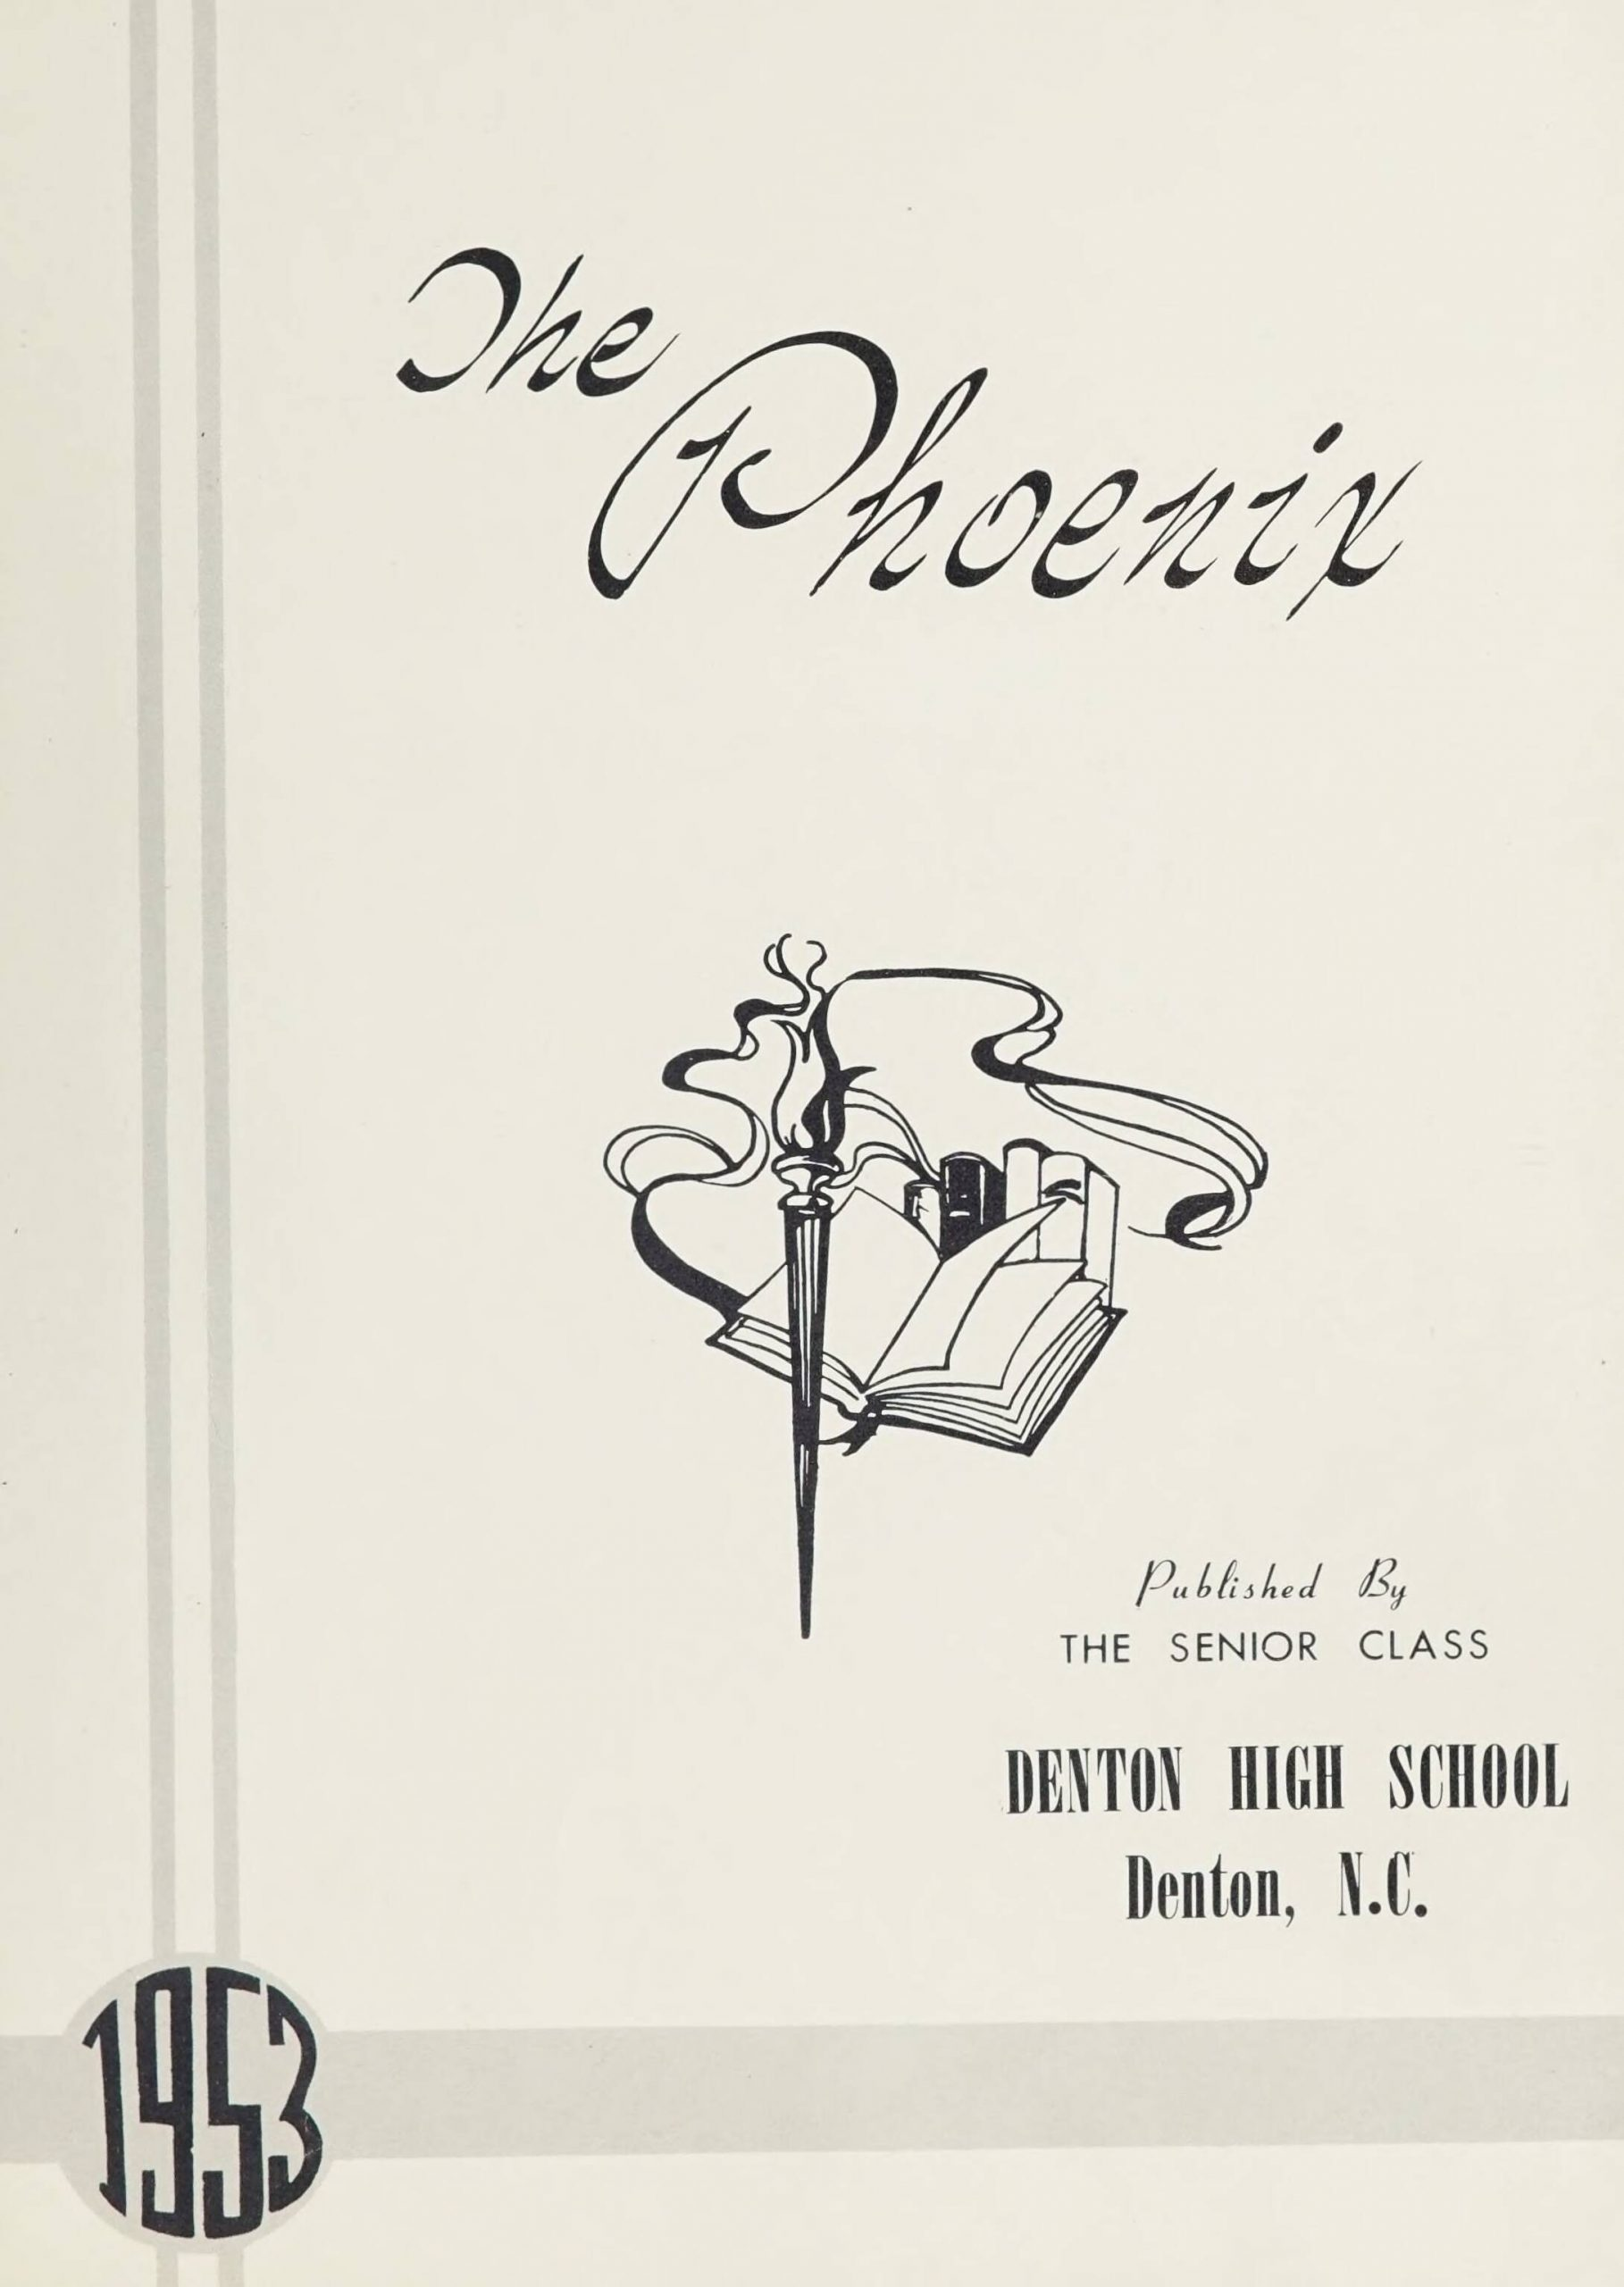 The Phoenix 1953. Published by the senior class of Denton High School in Denton, NC. Included on the page is a torch and an open book with blank pages.